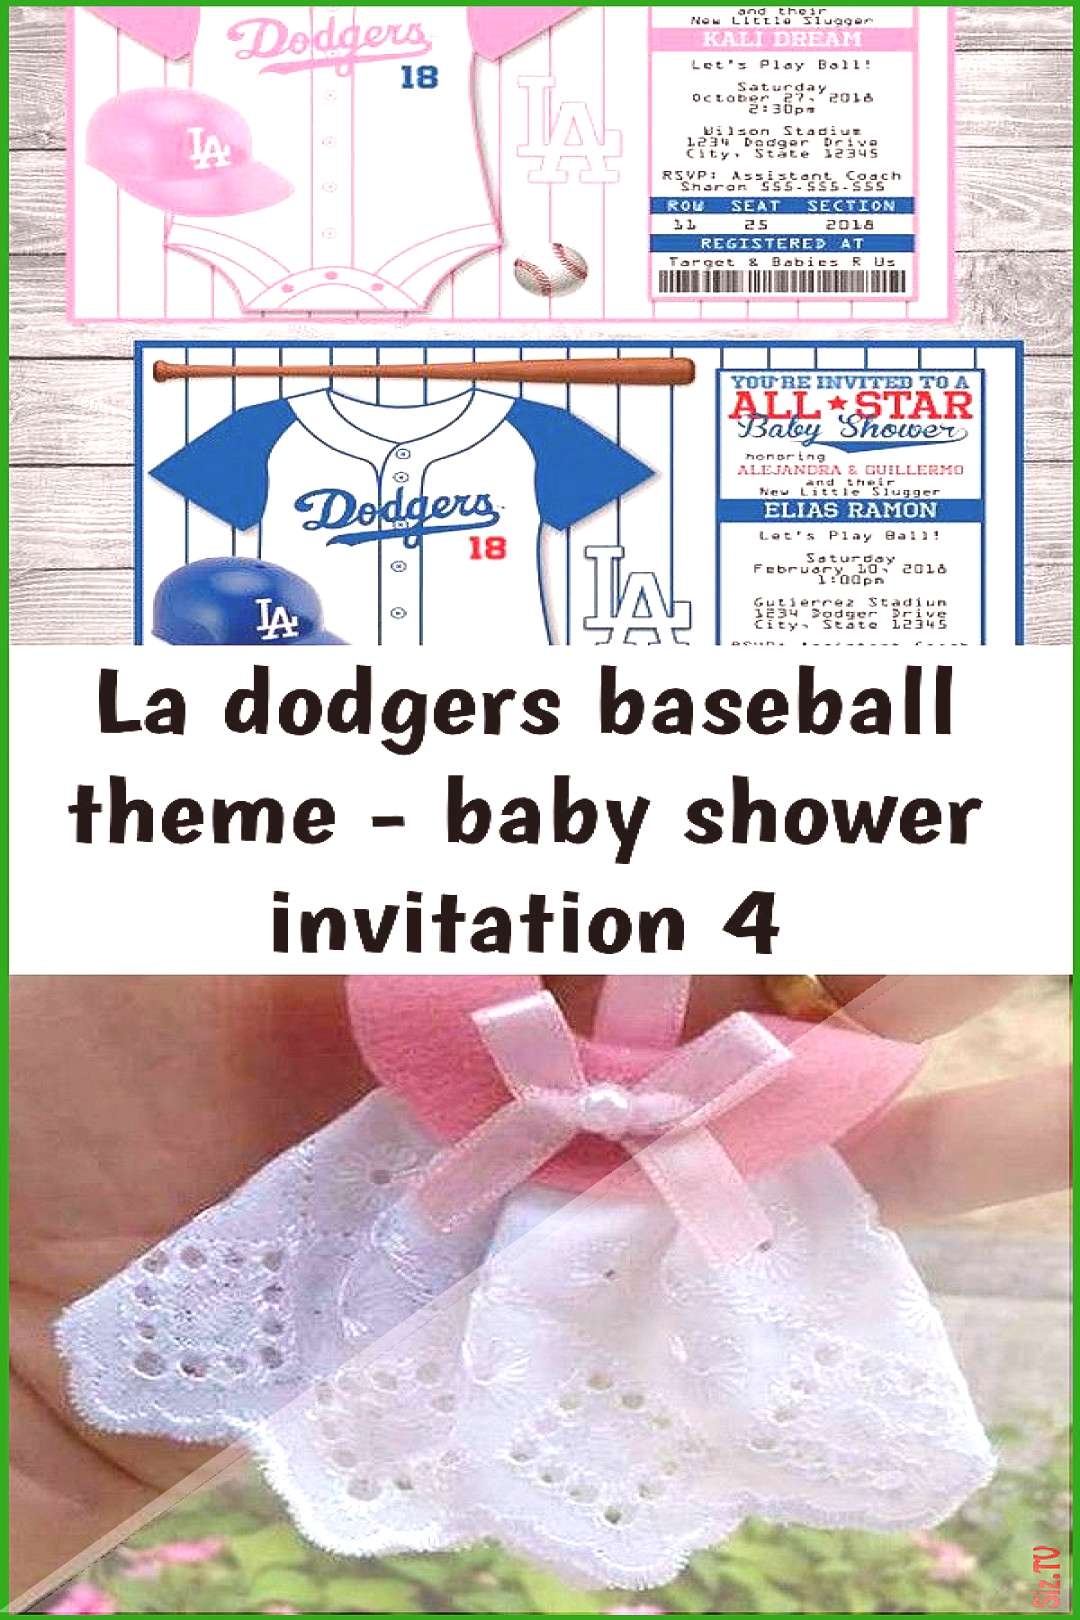 La dodgers baseball theme &; baby shower invitation 4 La dodgers baseball theme &; baby shower invi